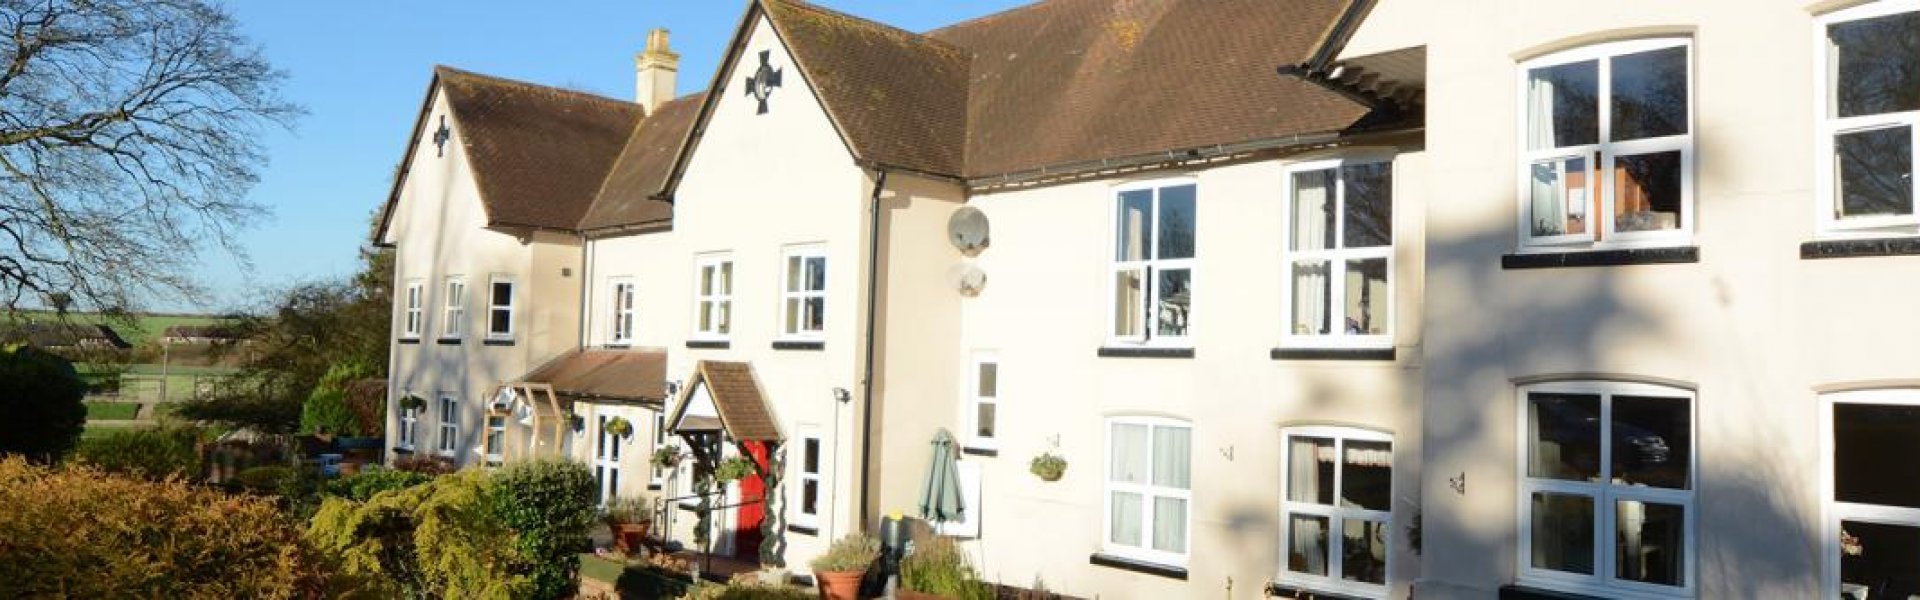 Welcome To Old Alresford Cottage Care Home In Hampshire